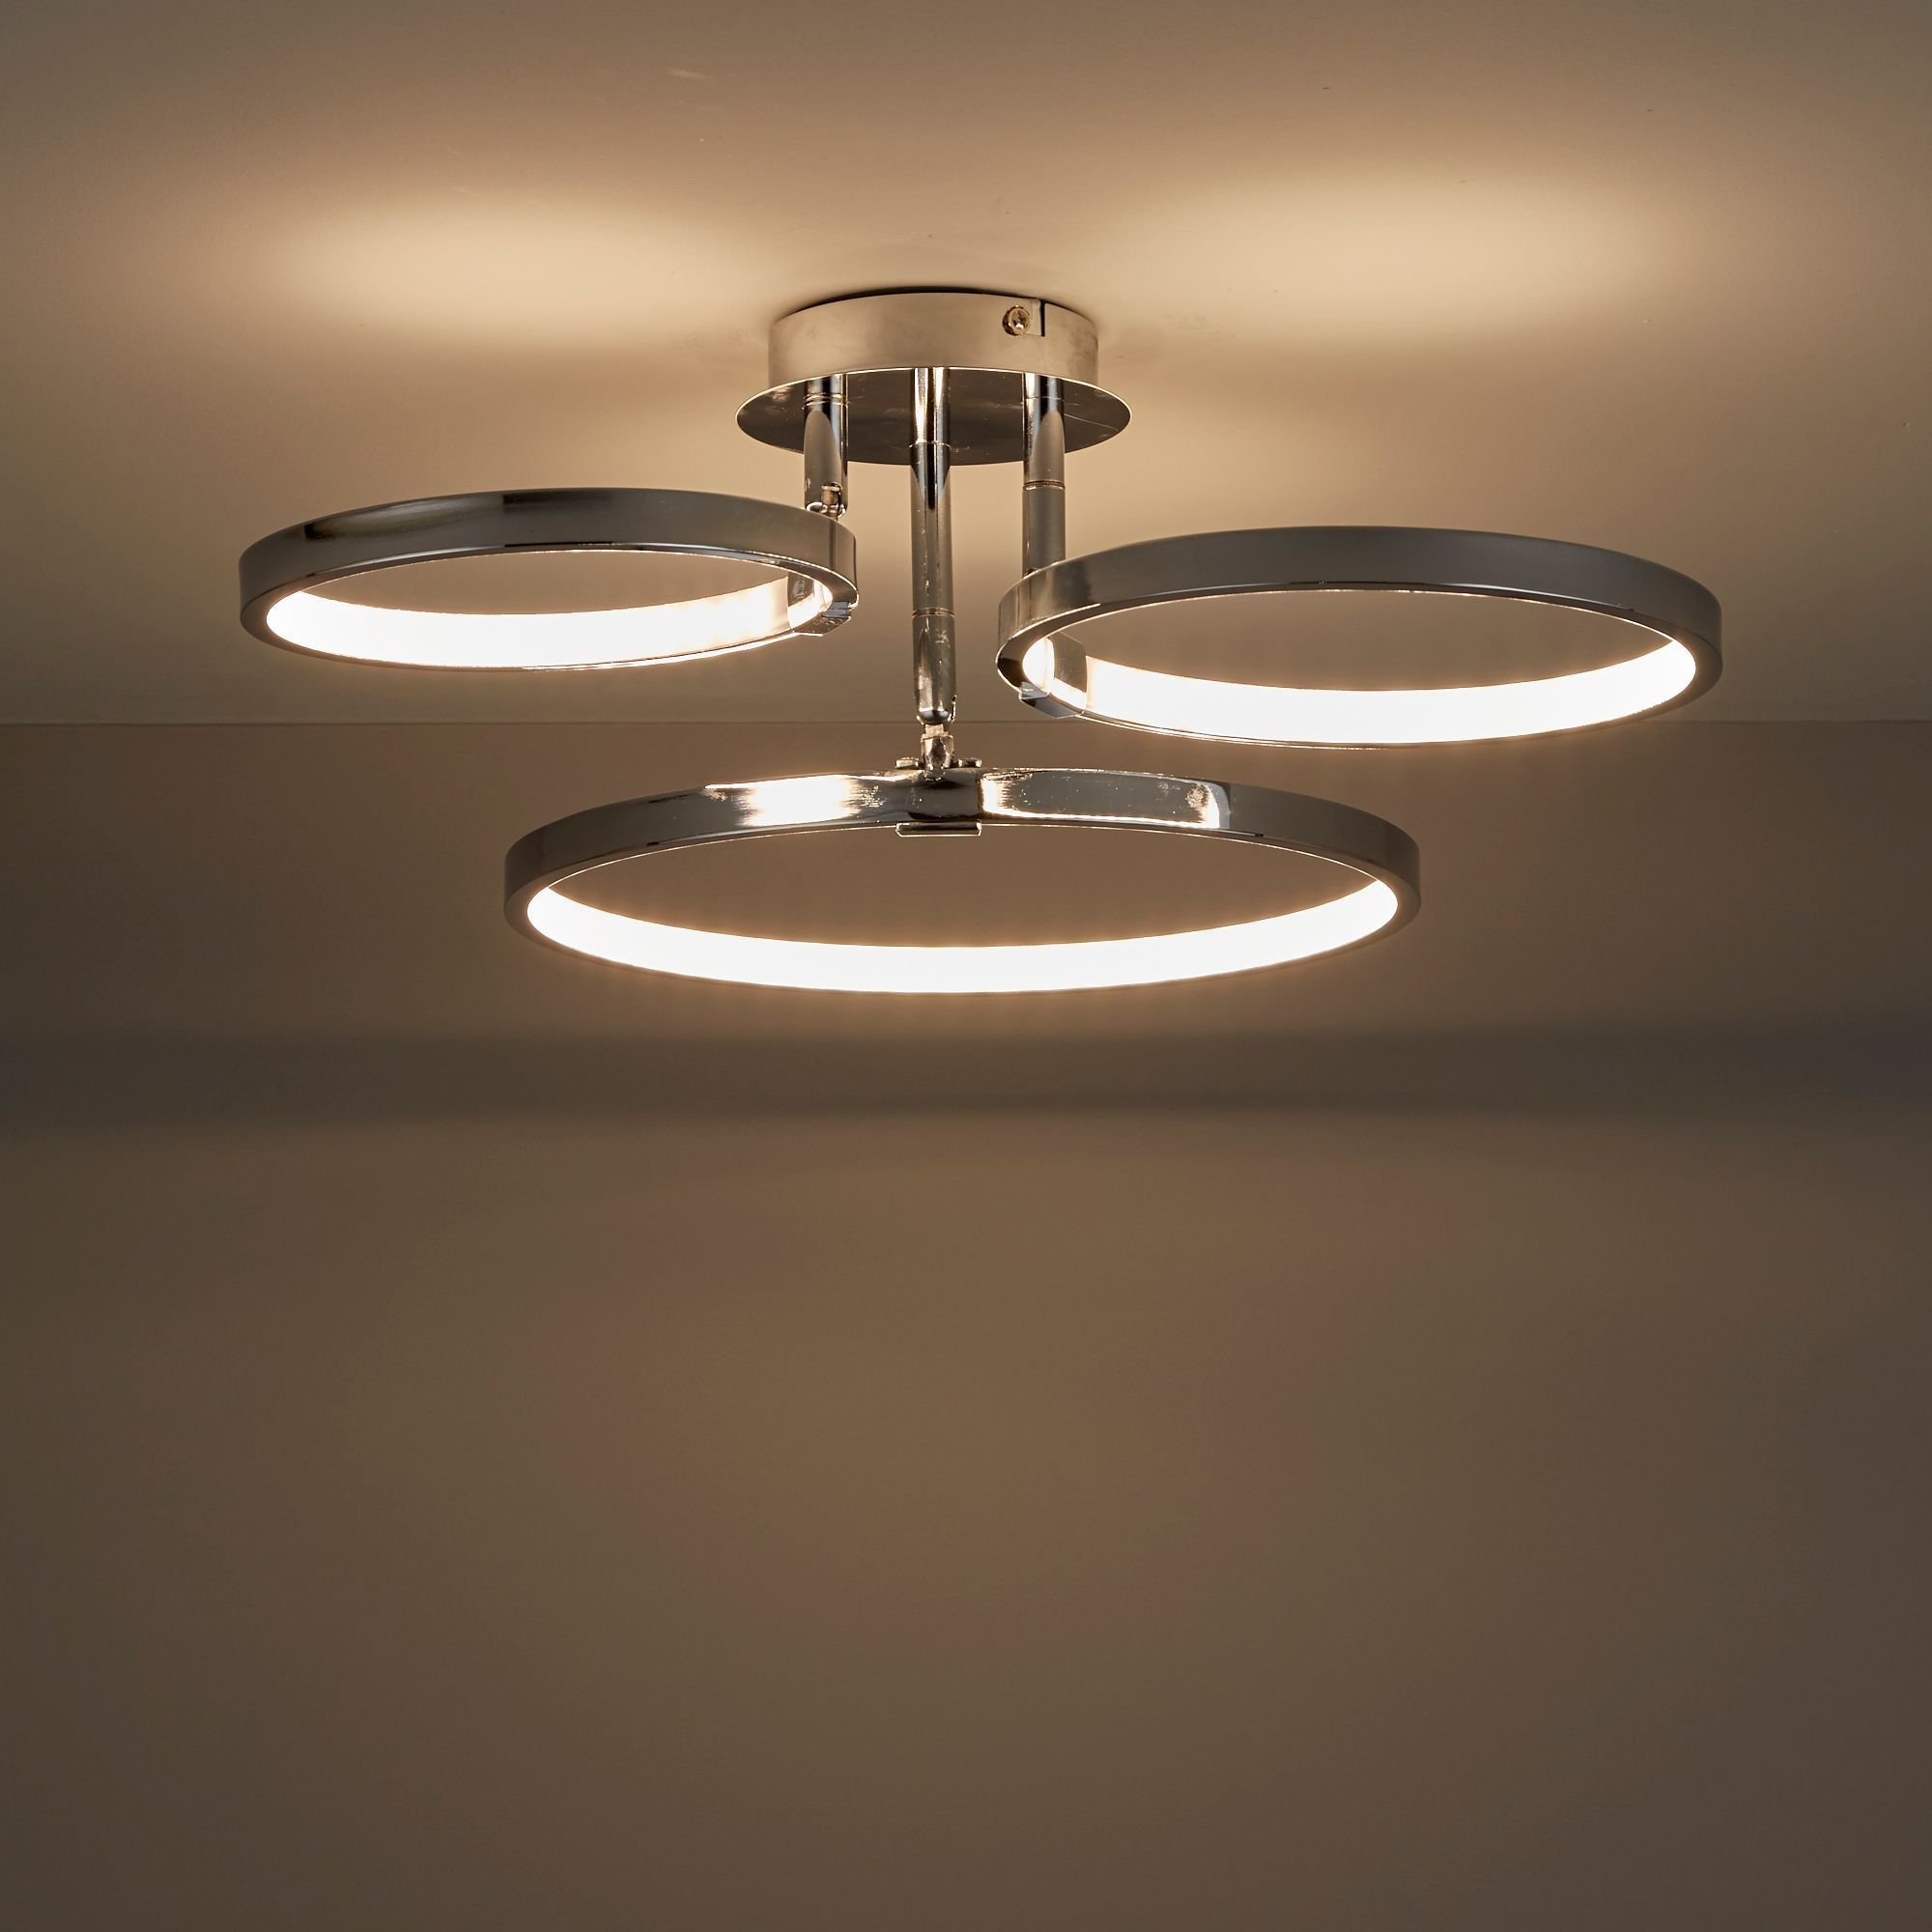 Best Guest Bedroom £58 Annellus Chrome Effect 3 Lamp Ceiling With Pictures